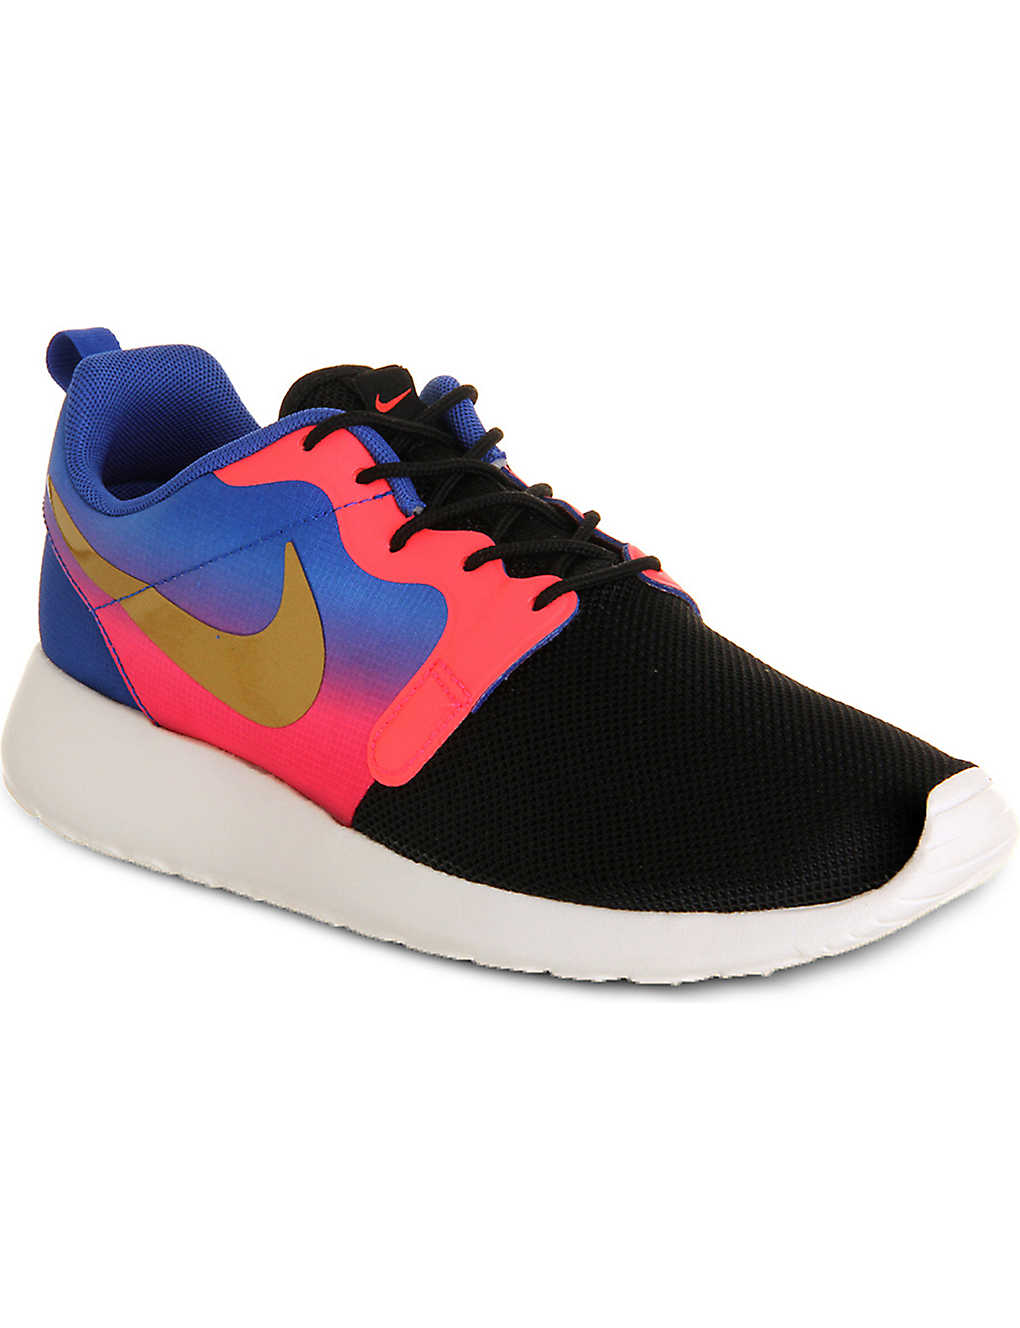 63378897e9cca NIKE - Roshe Run Hyp trainers